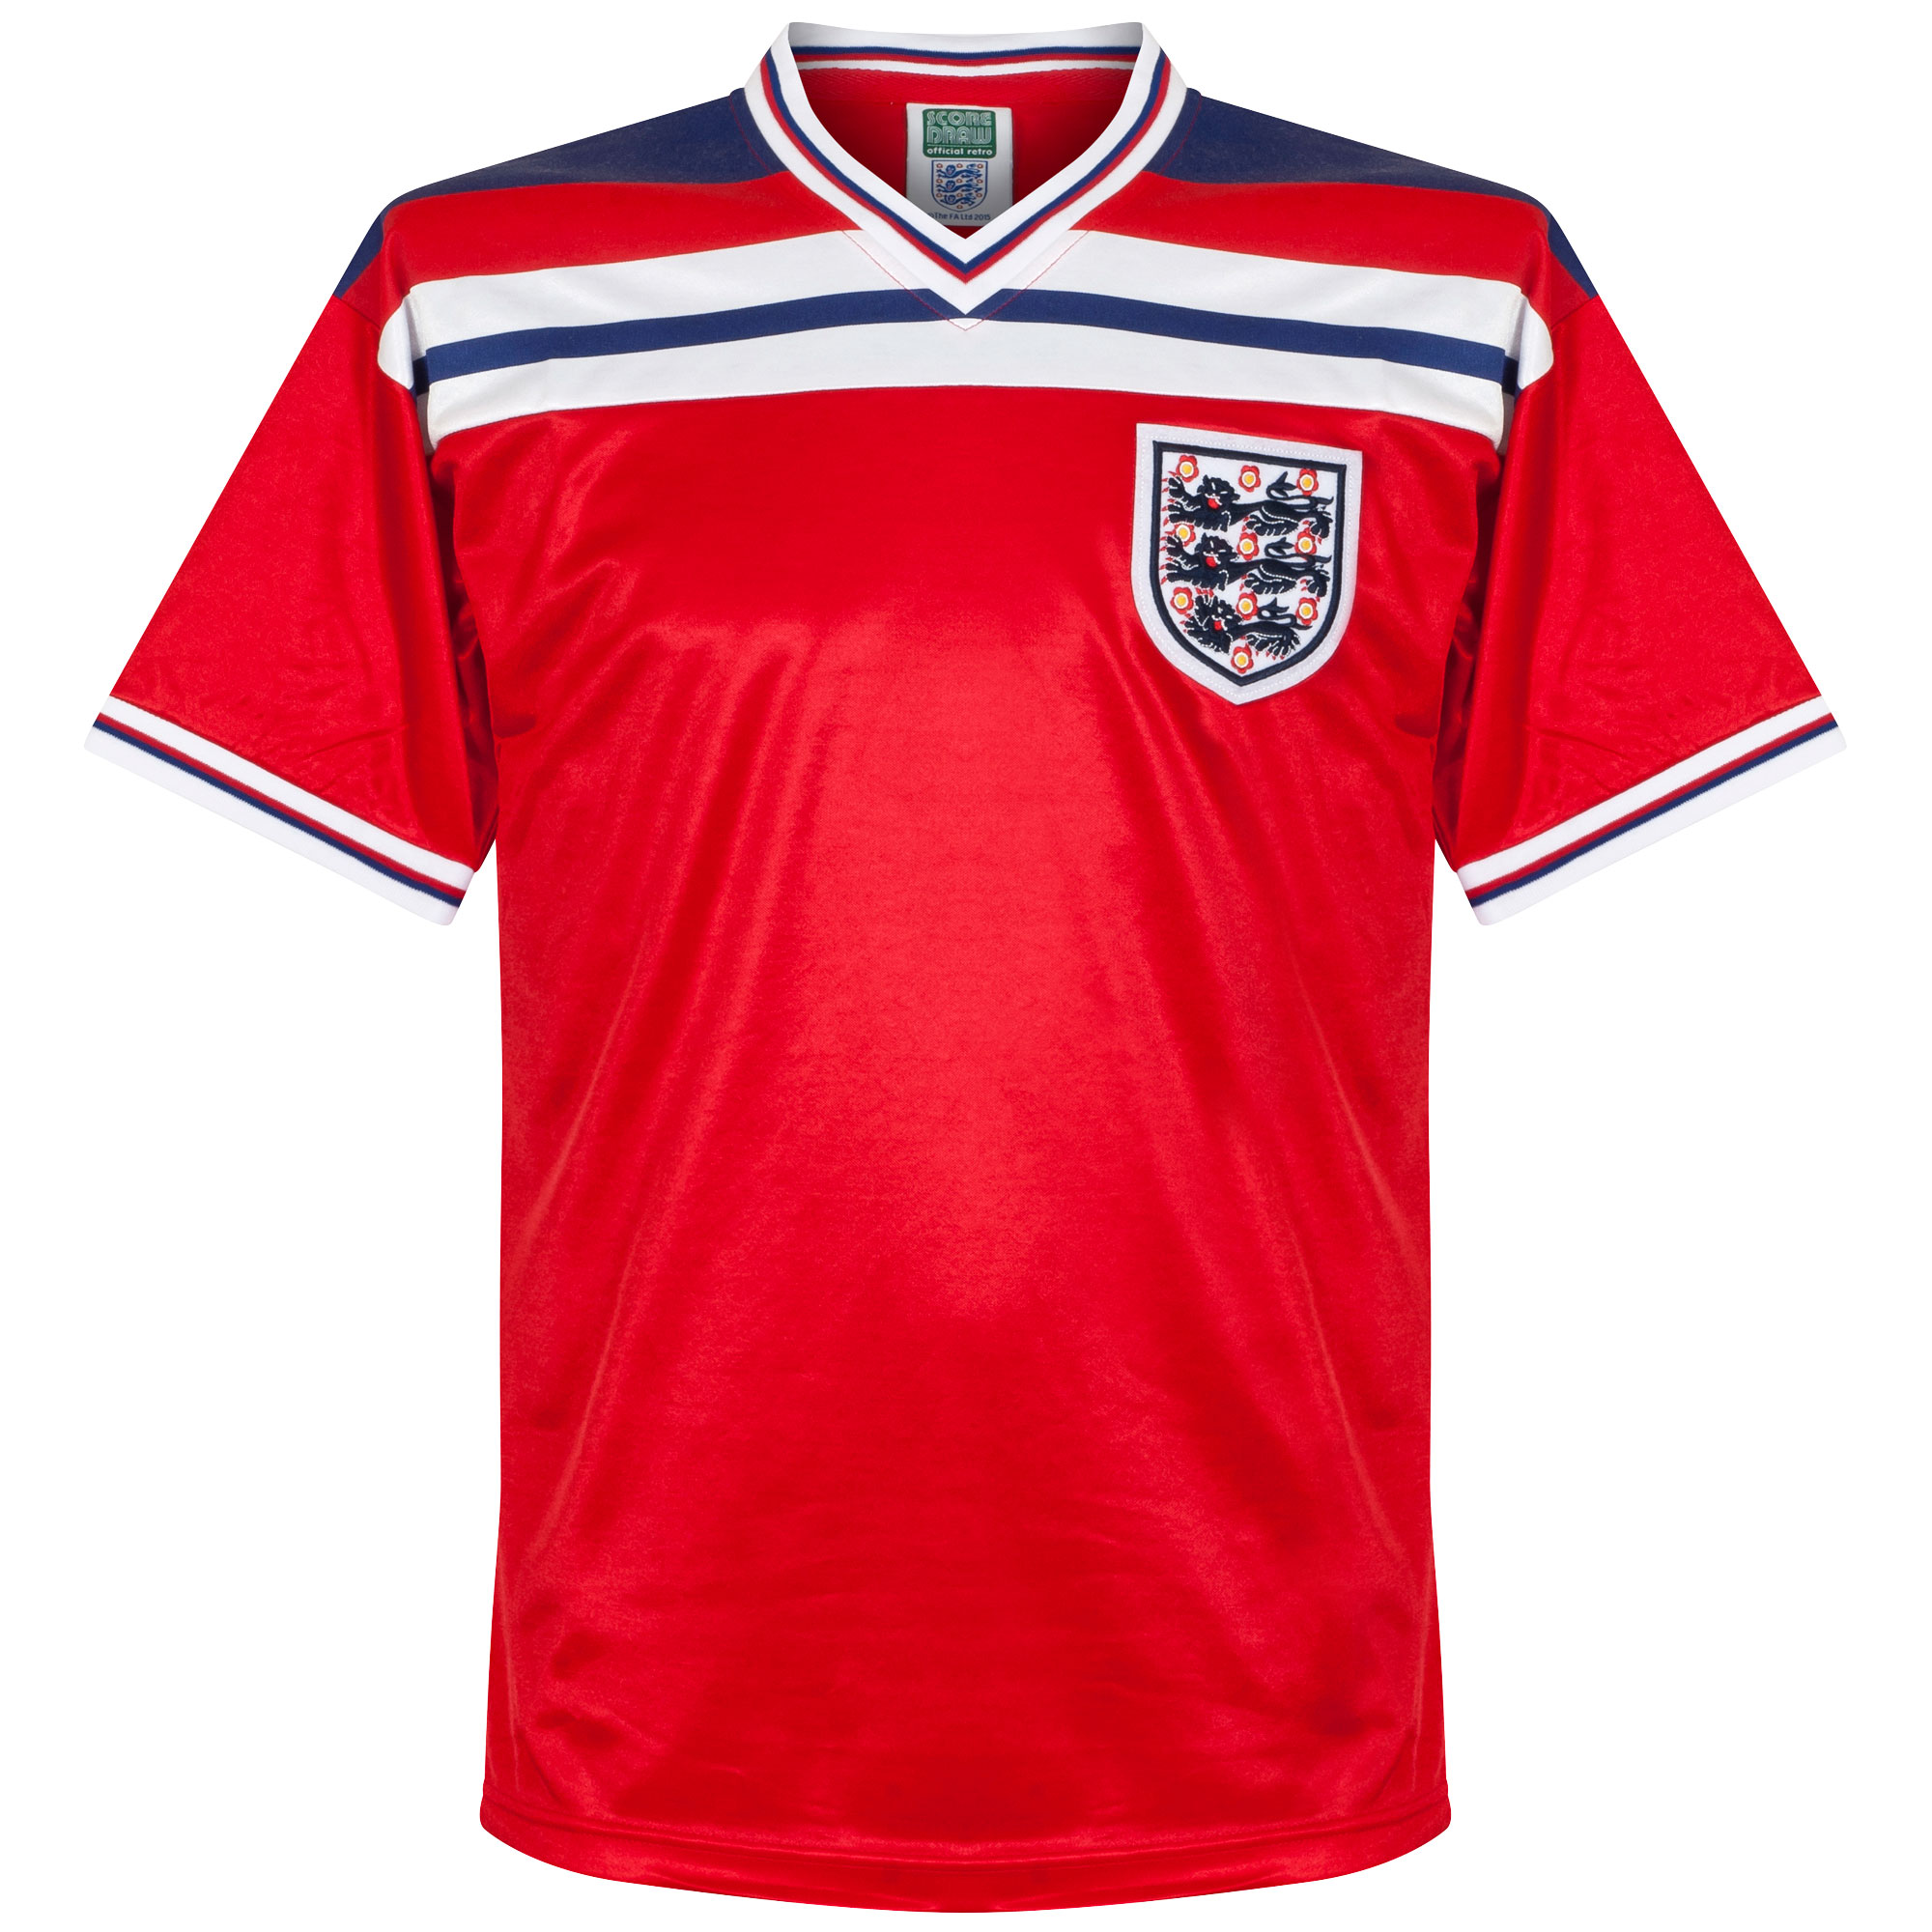 1982 England Away Retro Shirt - XL